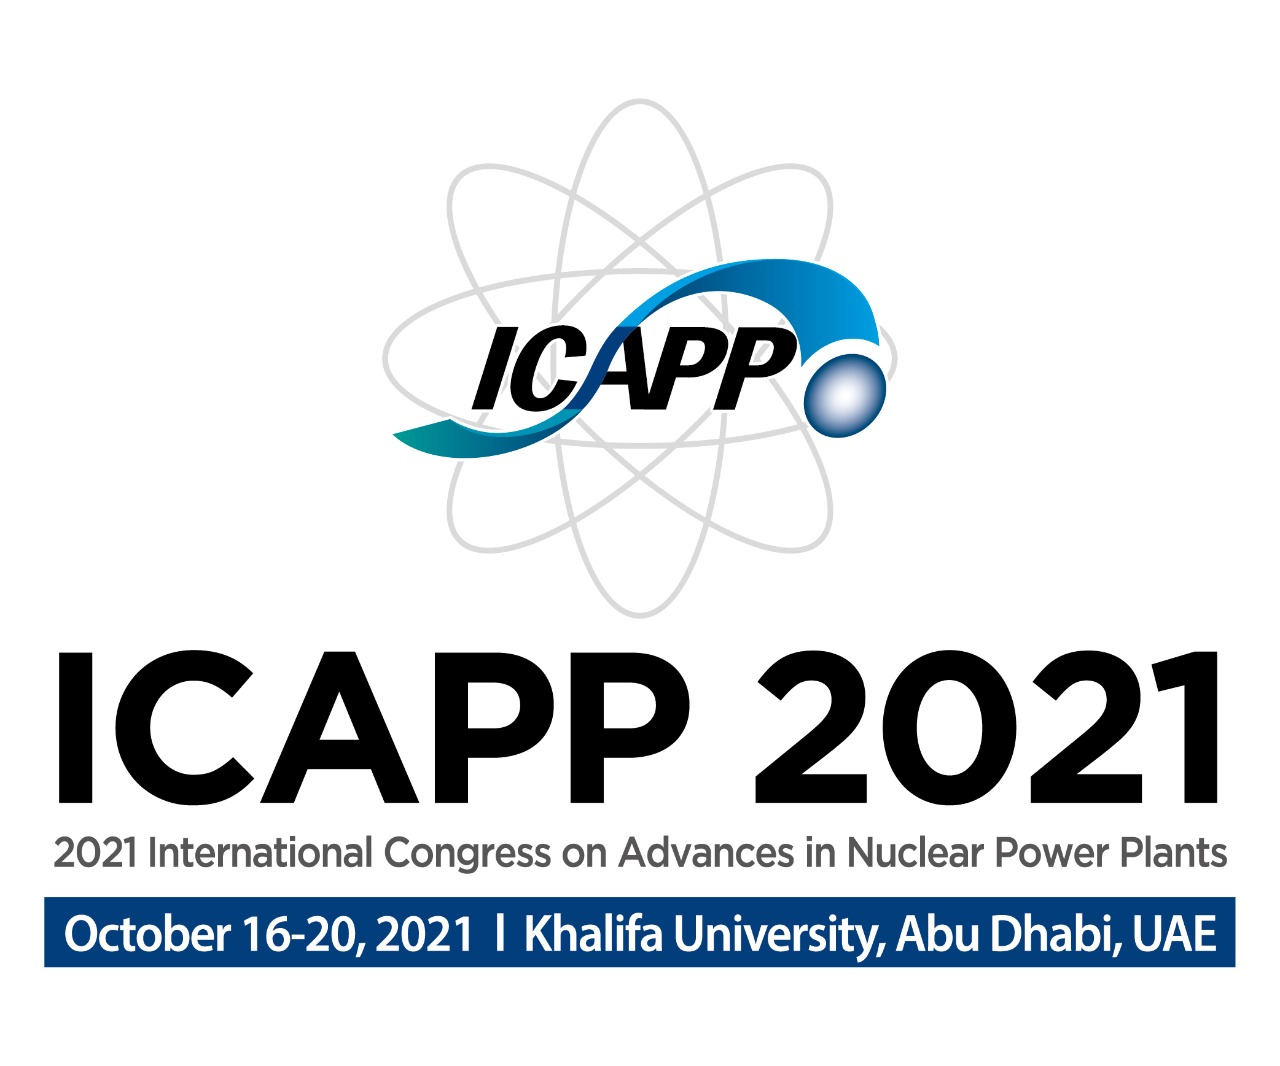 ICAPP 2021, Region's First International Conference on Nuclear Energy, Opens in Abu Dhabi